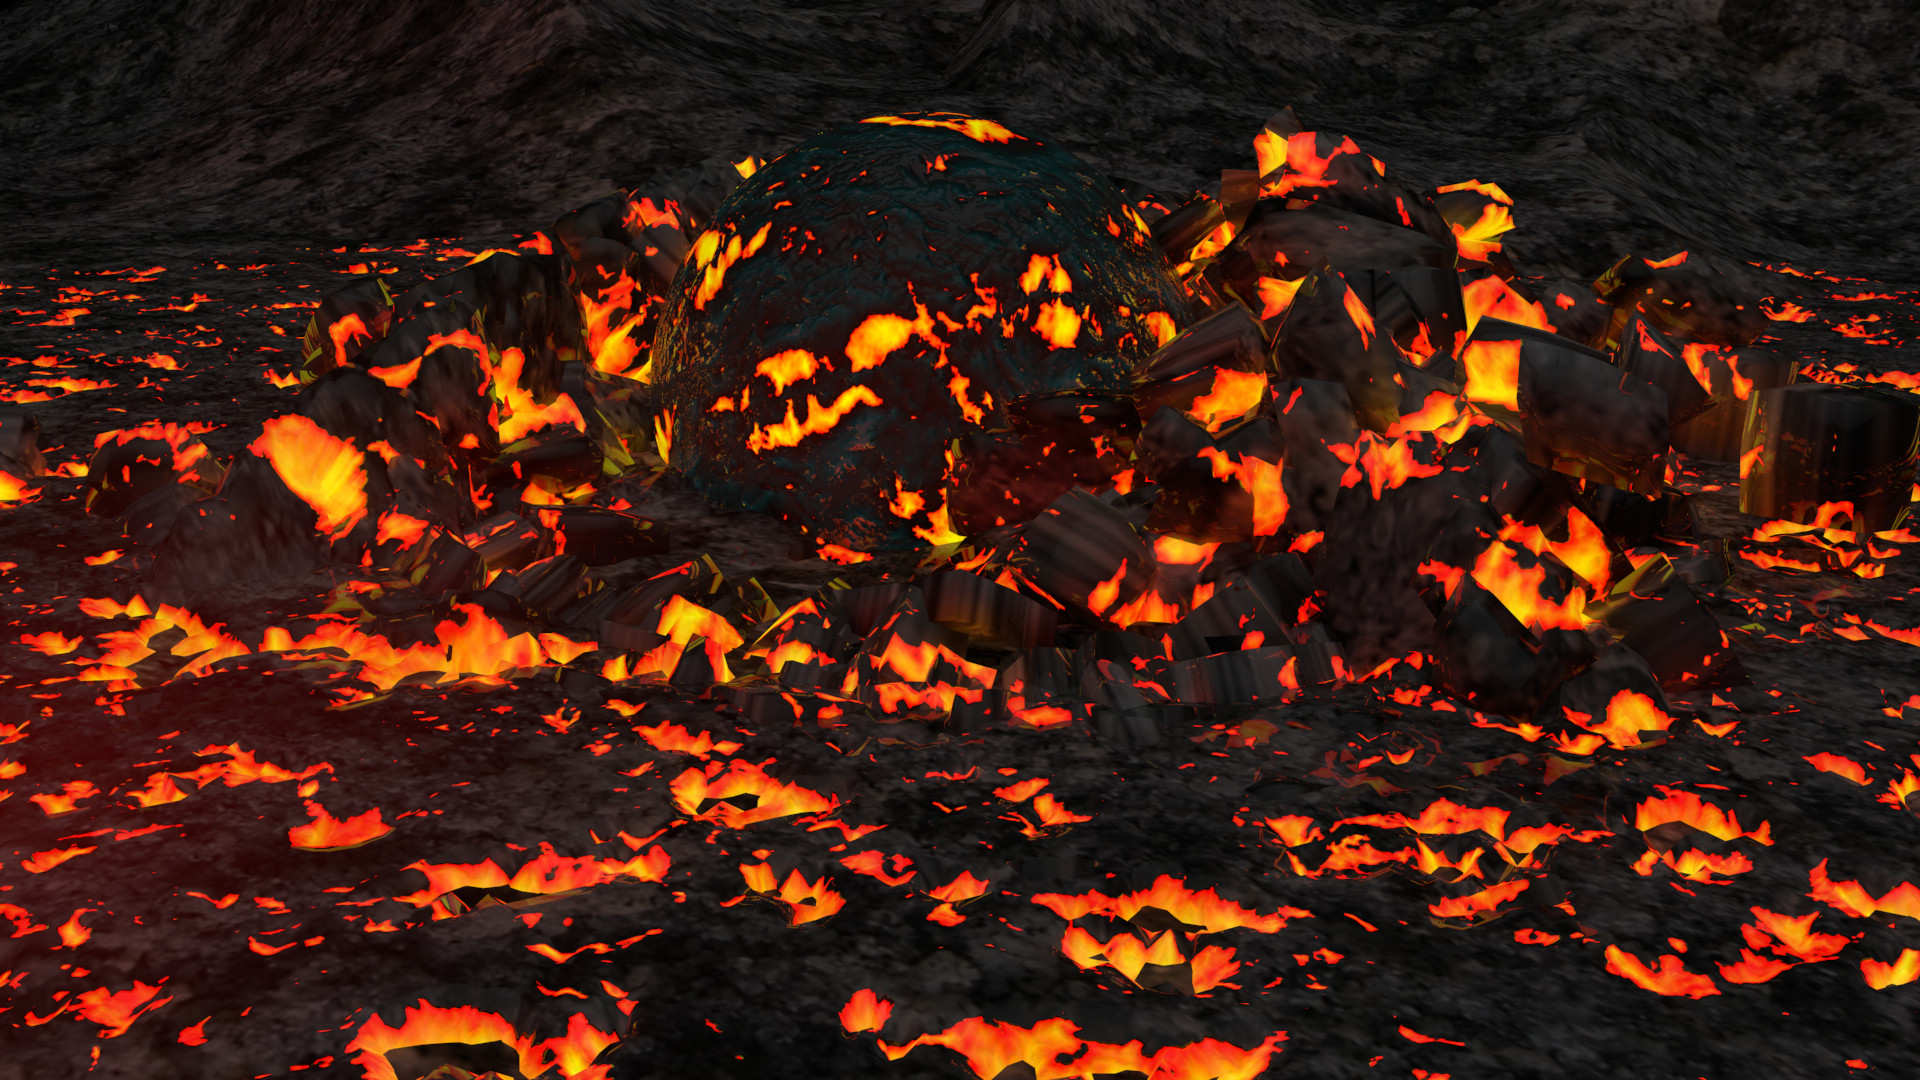 app lava wallpaper hd apk for windows phone android games and apps 1920x1080